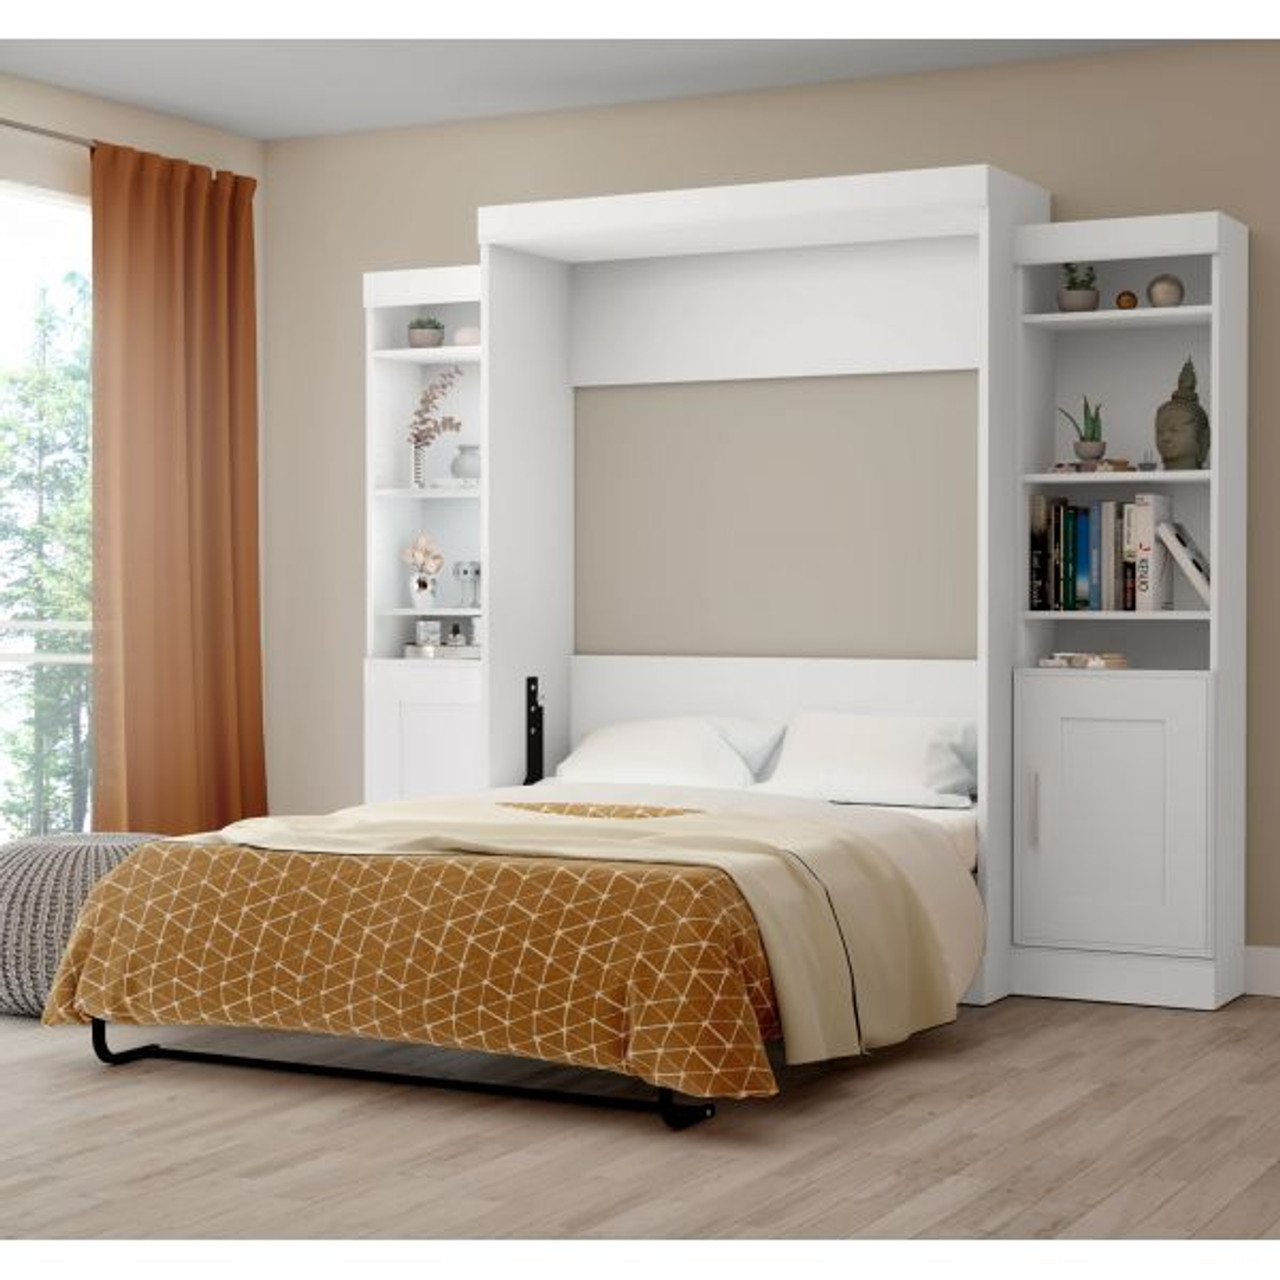 Wall Bed Installation